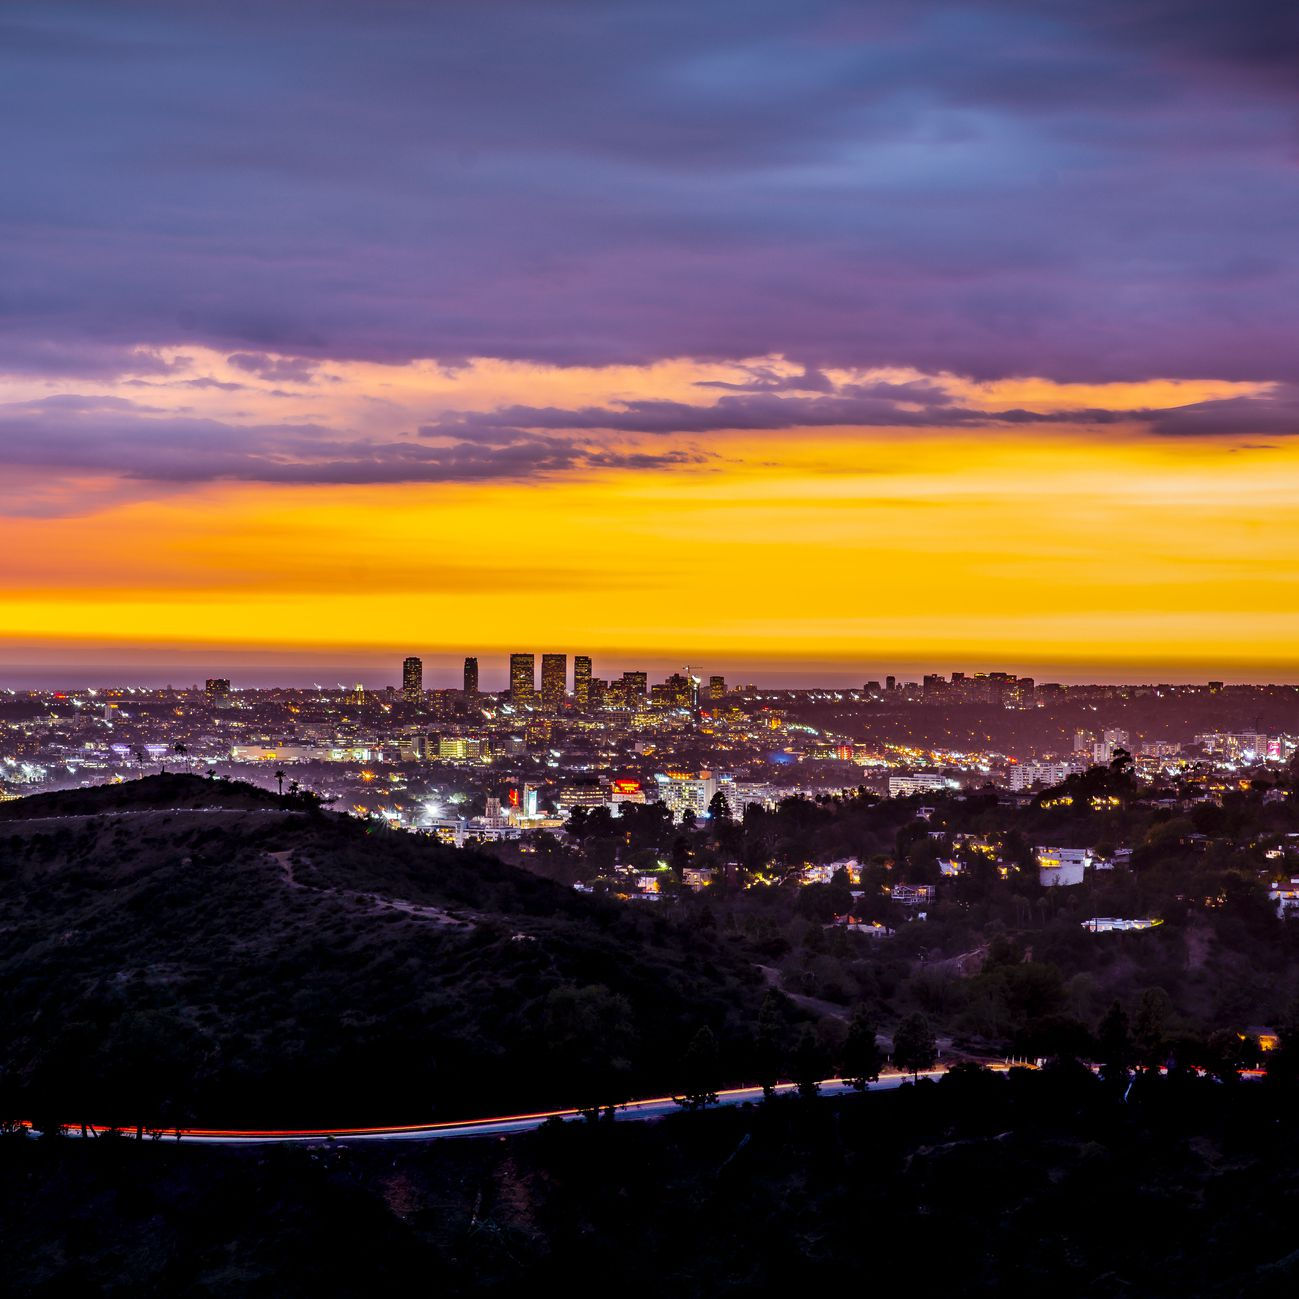 The Top 10 Places to Watch the Sunset in Los Angeles